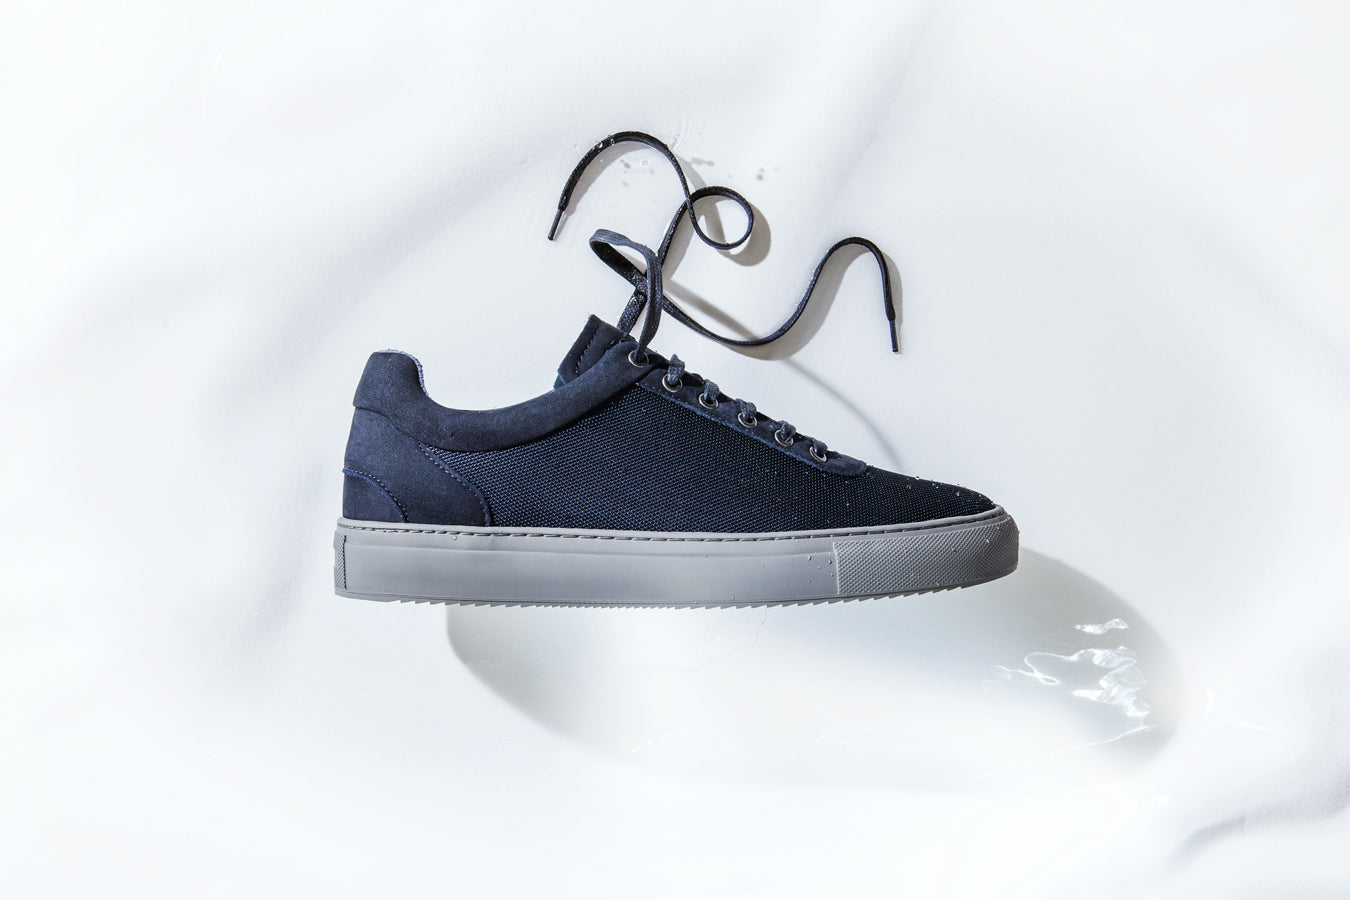 weatherproof sneaker no-1, blueberry